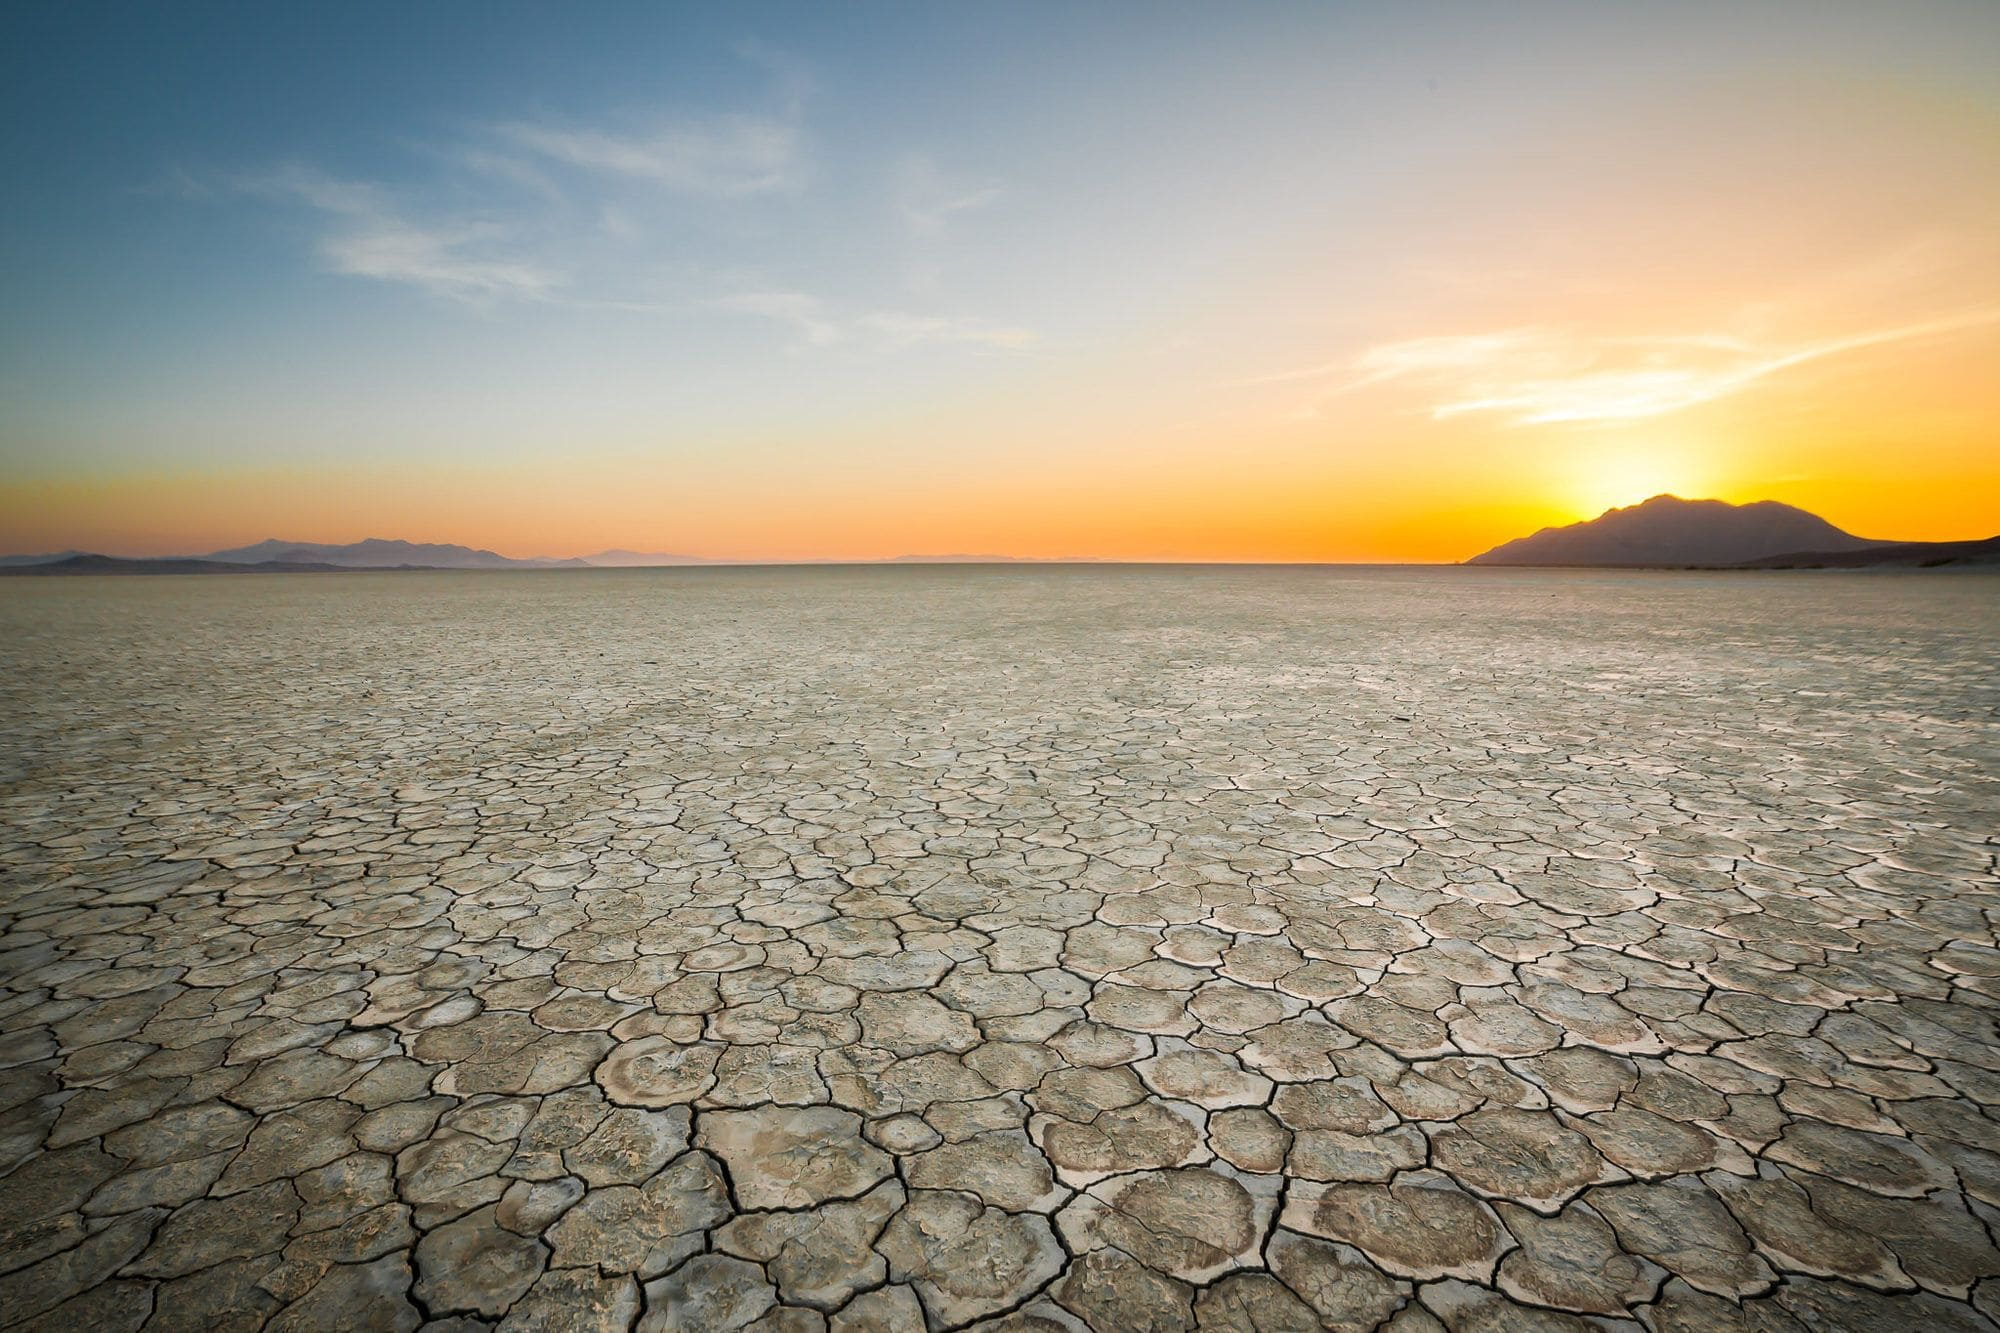 Black Rock Desert // Visit 12 of the best Nevada road trip stops, from the top state parks to hot springs, ghost towns & trails where you'll find solitude and amazing landscapes